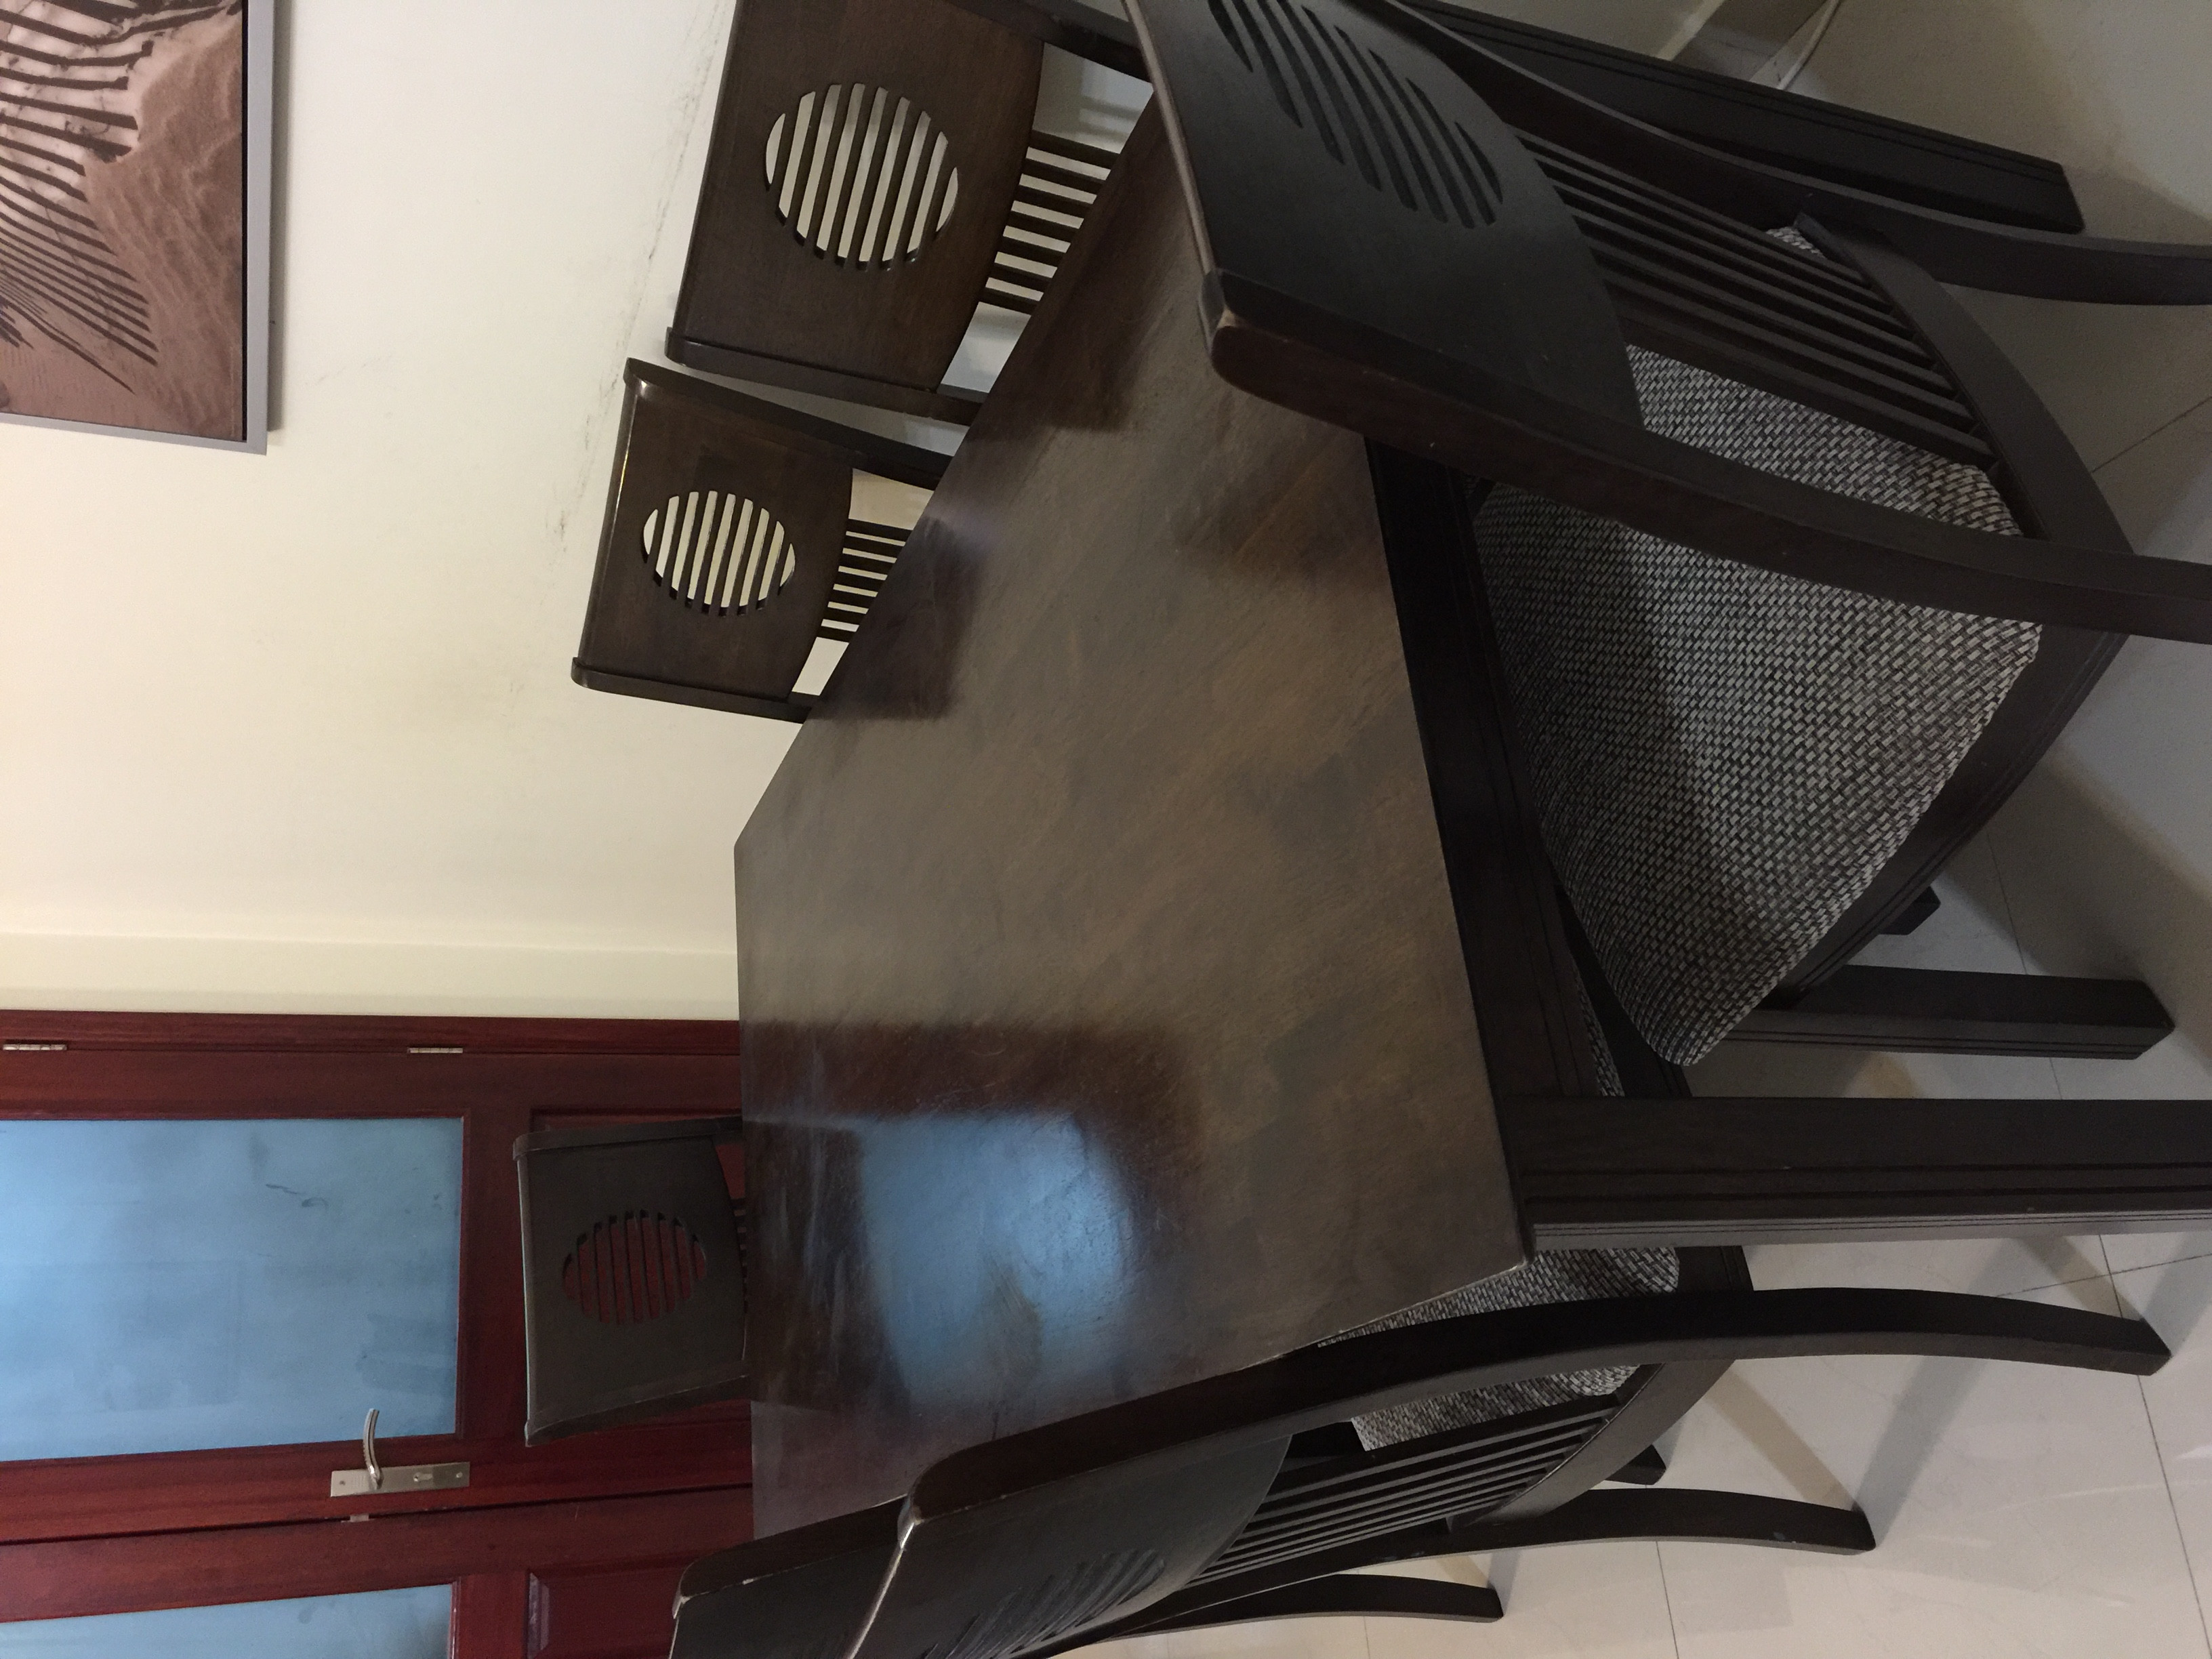 Dining Set With 6 Chairs From Home Center Abu Dhabi Uae Storat